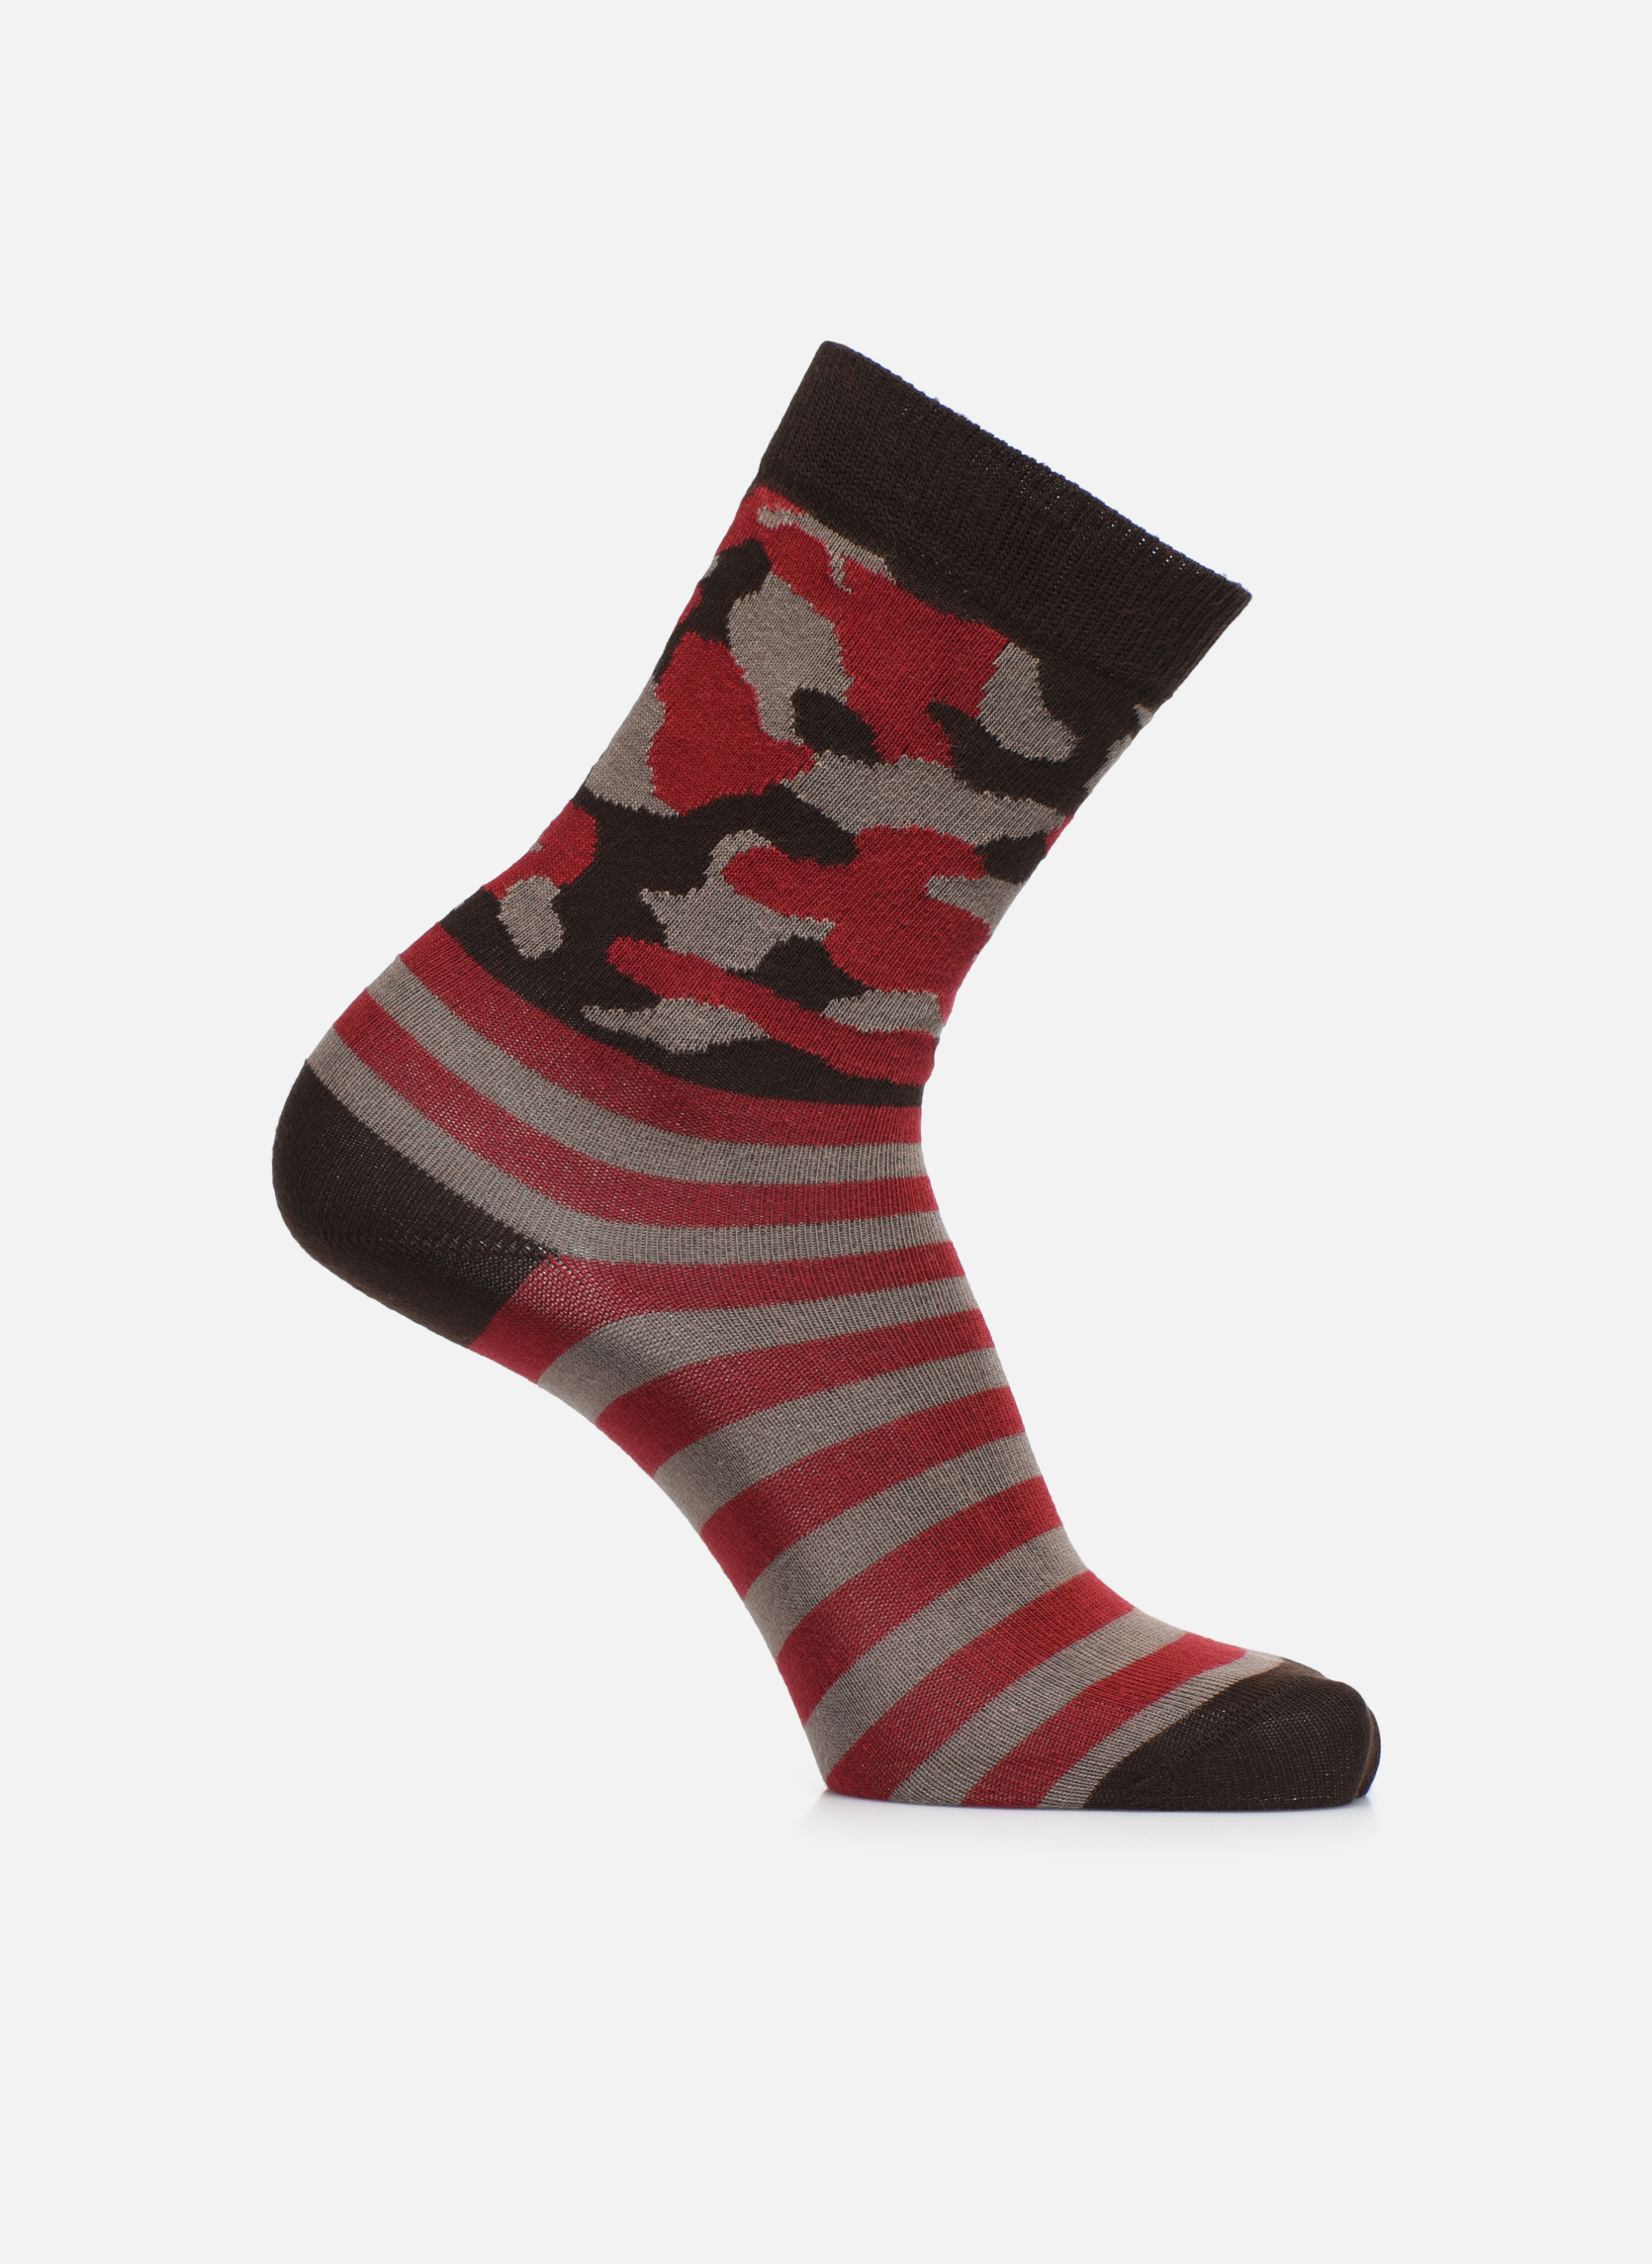 Socks ARMY 022 - marron / rouge